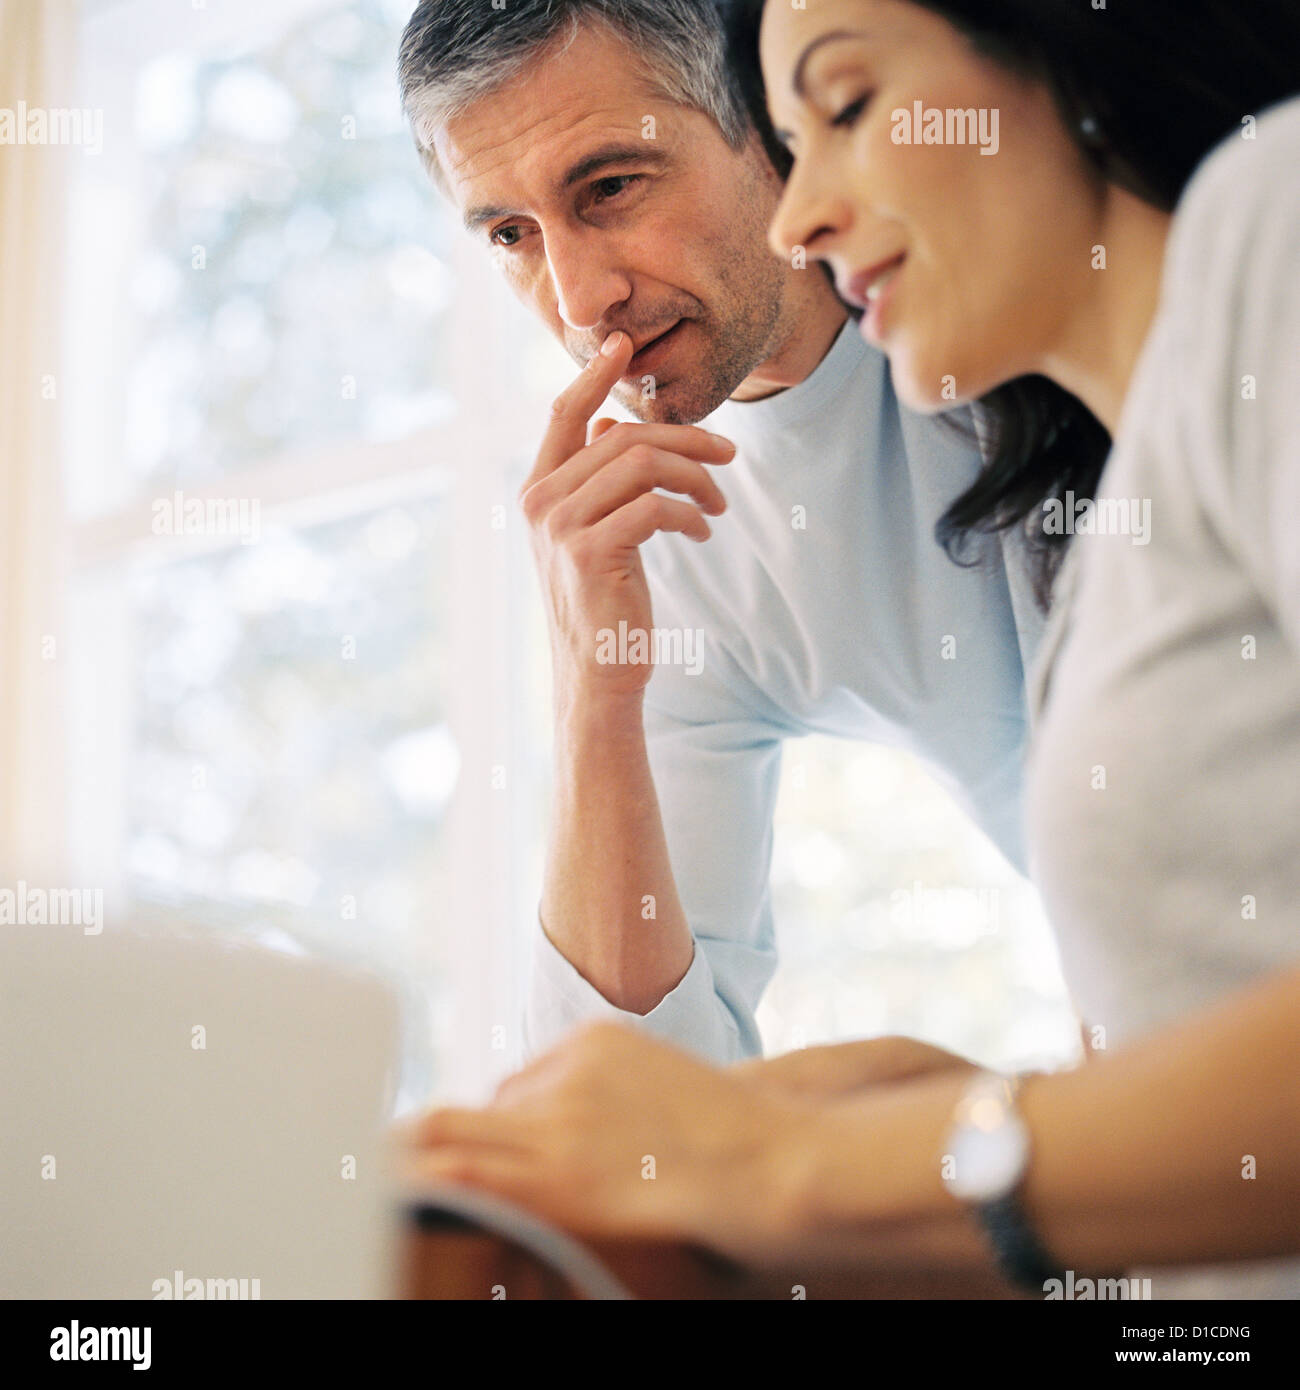 Man and woman at home License free except ads and billboards - Stock Image